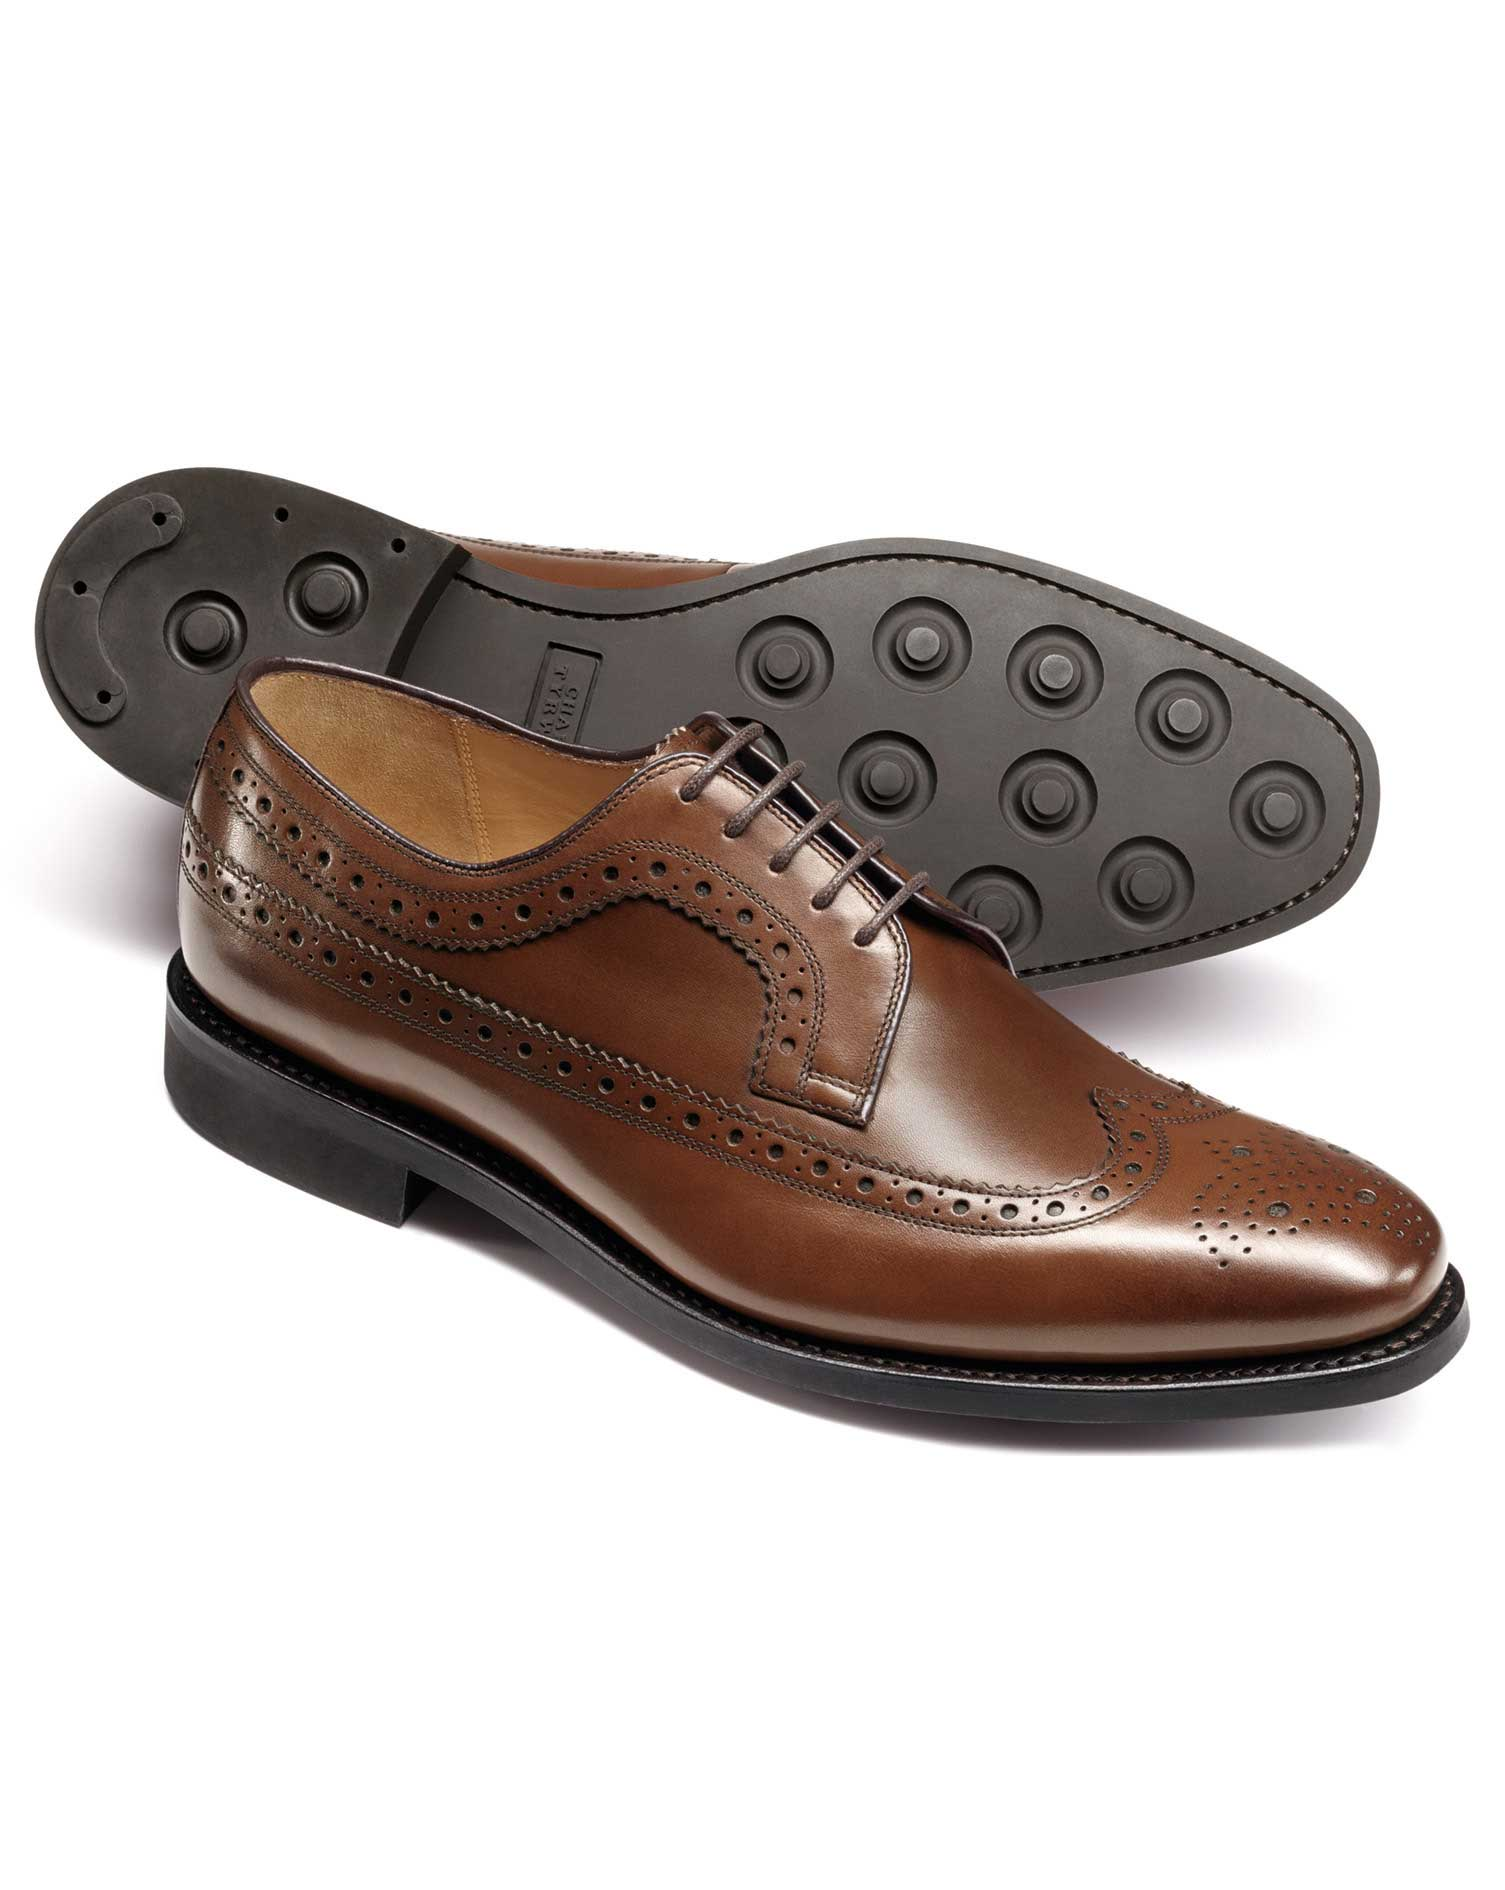 Chestnut Goodyear Welted Derby Wing Tip Brogue Shoes Size 6 R by Charles Tyrwhitt